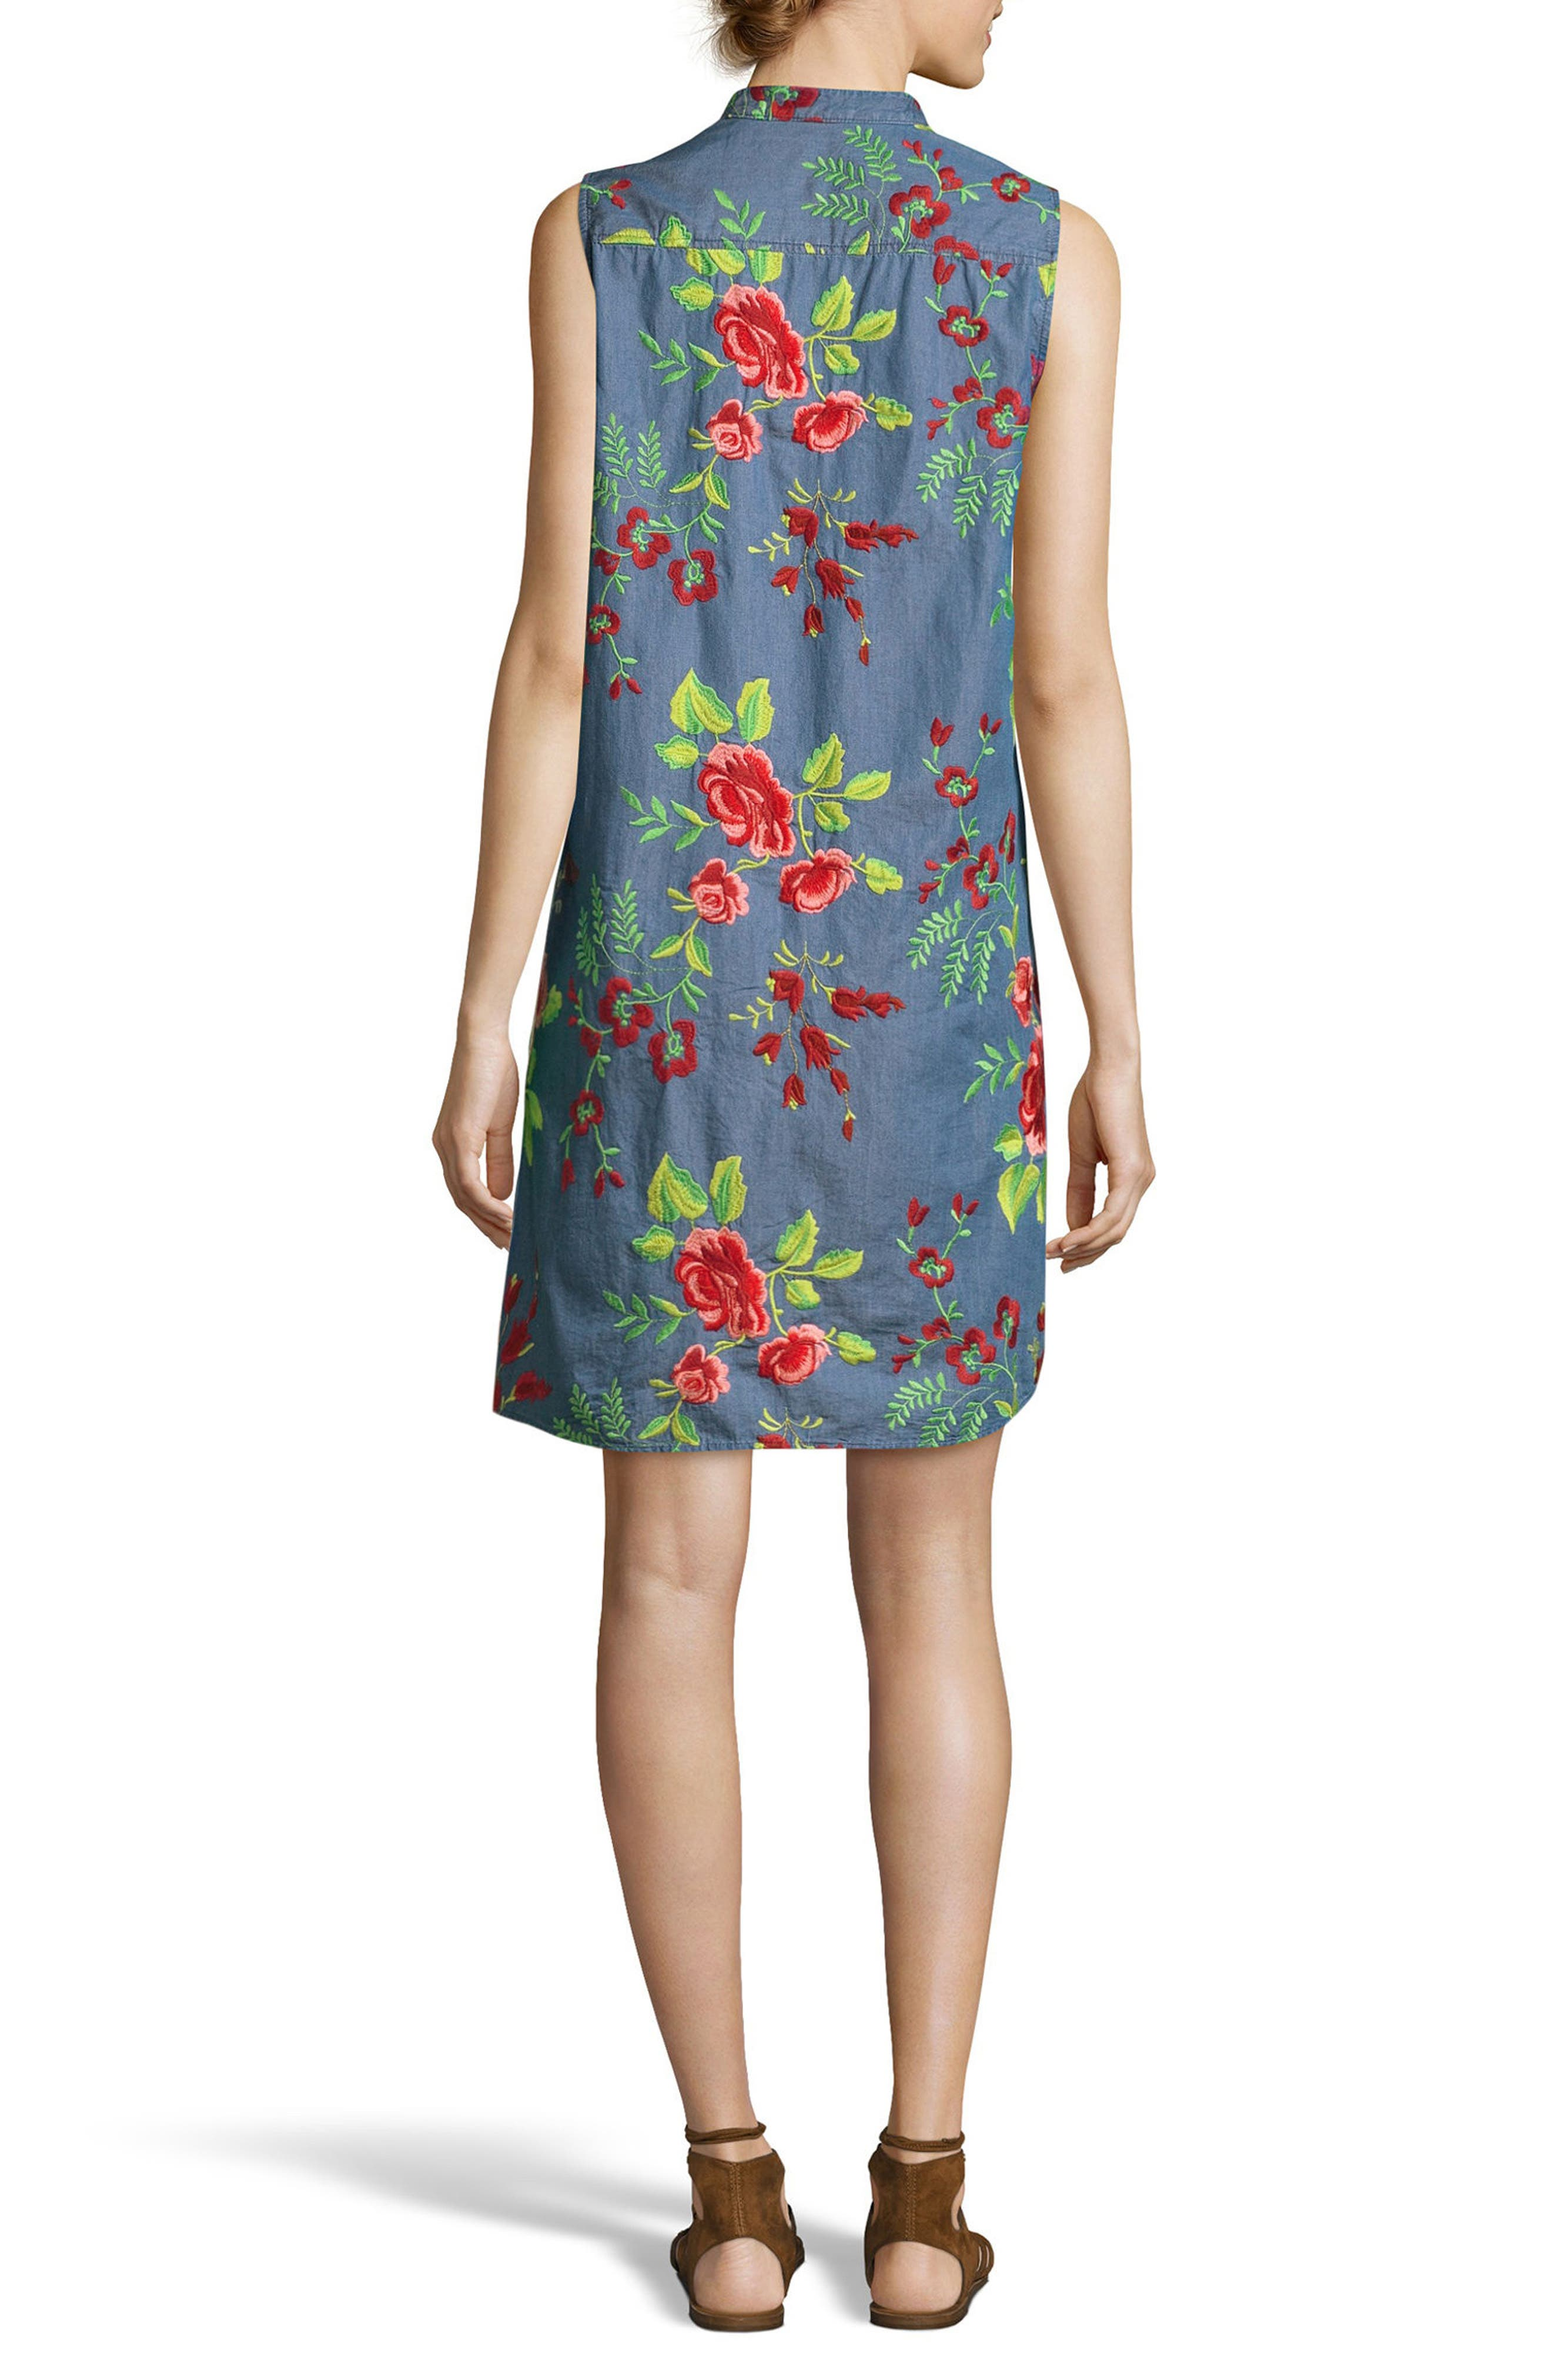 Embroidered Denim Shift Dress,                             Alternate thumbnail 2, color,                             Pink / Green